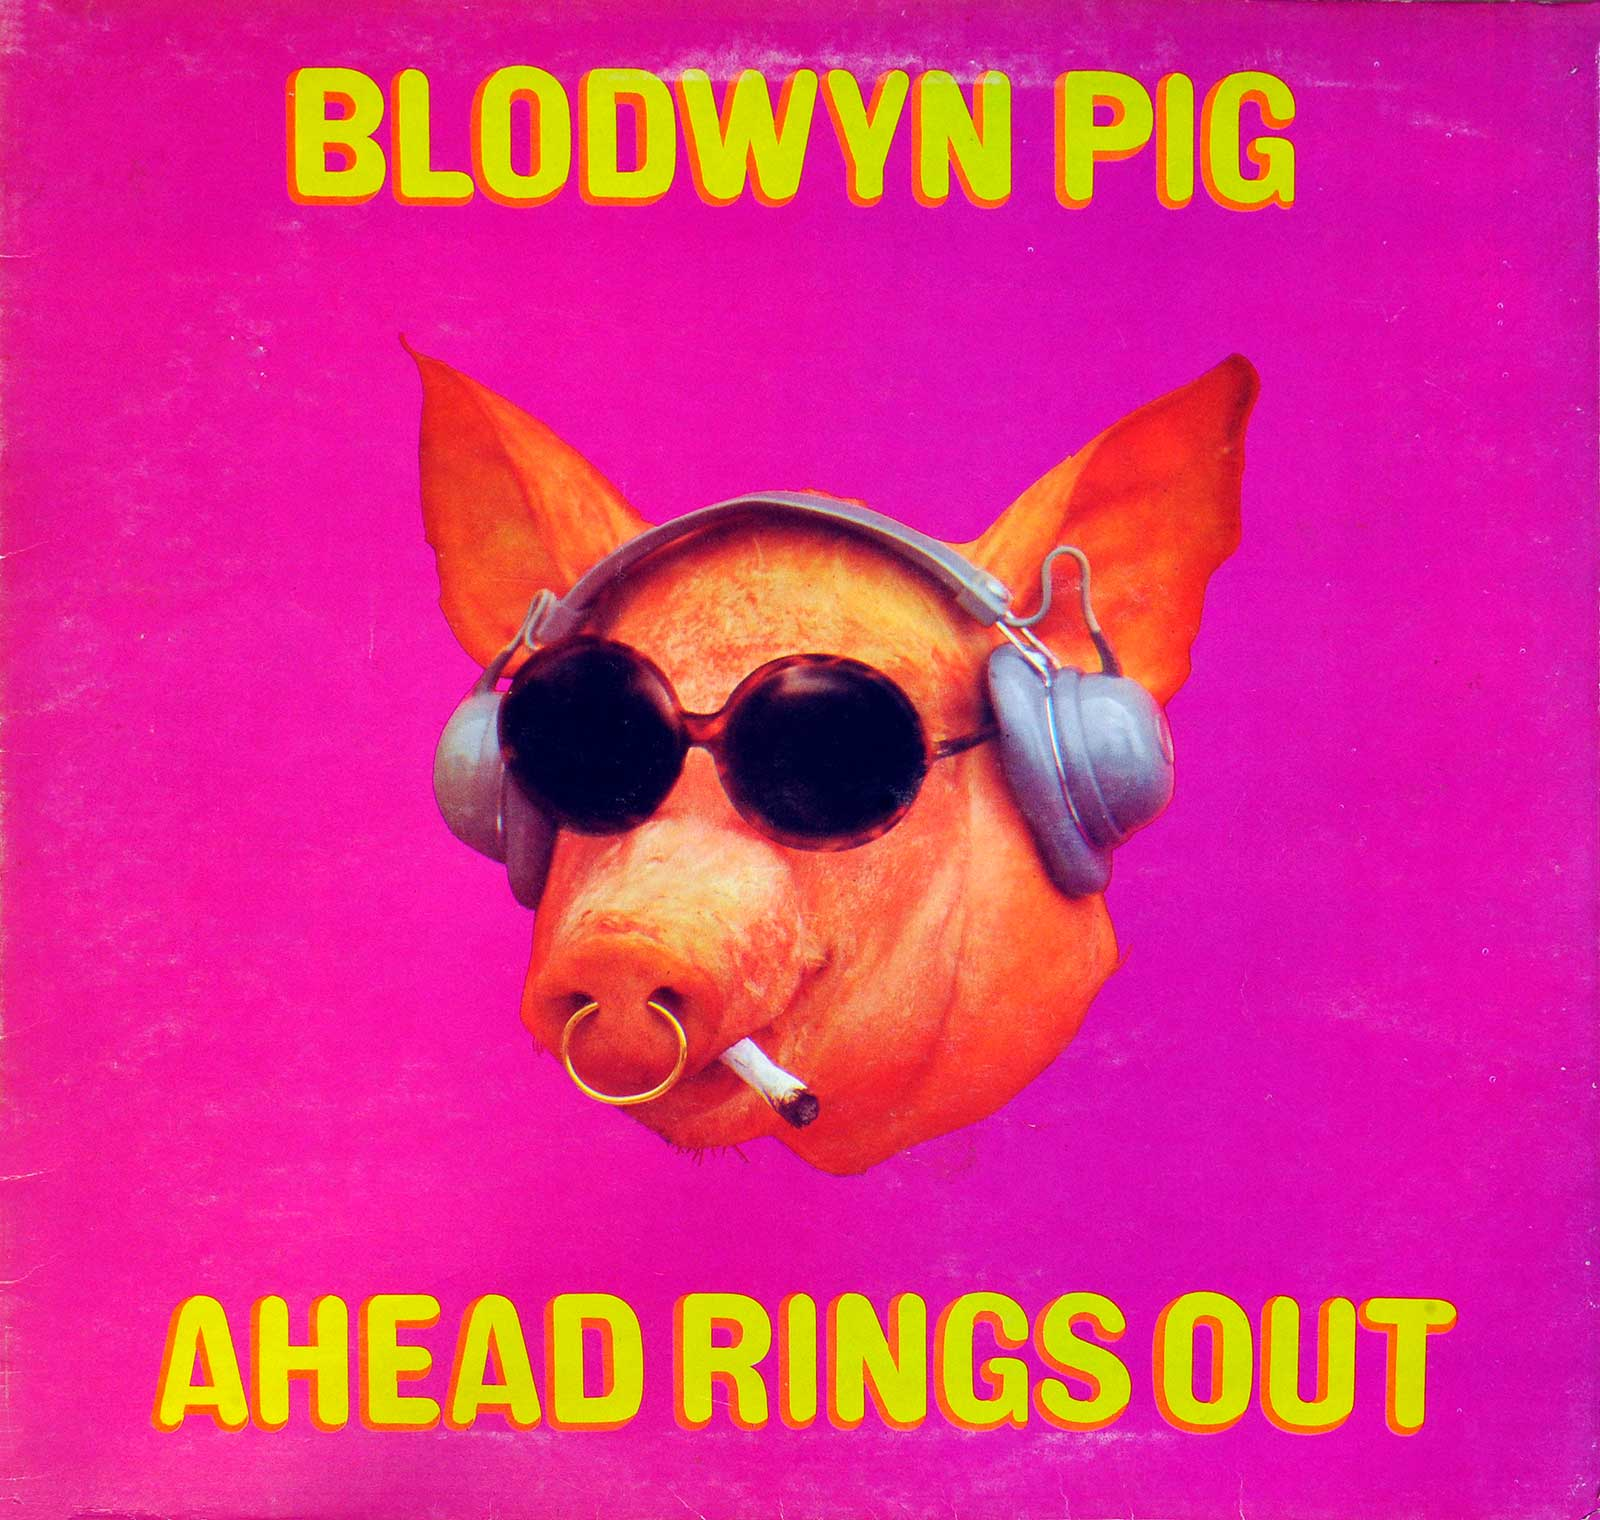 large photo of the album front cover of: BLODWYN PIG AHEAD RINGS OUT